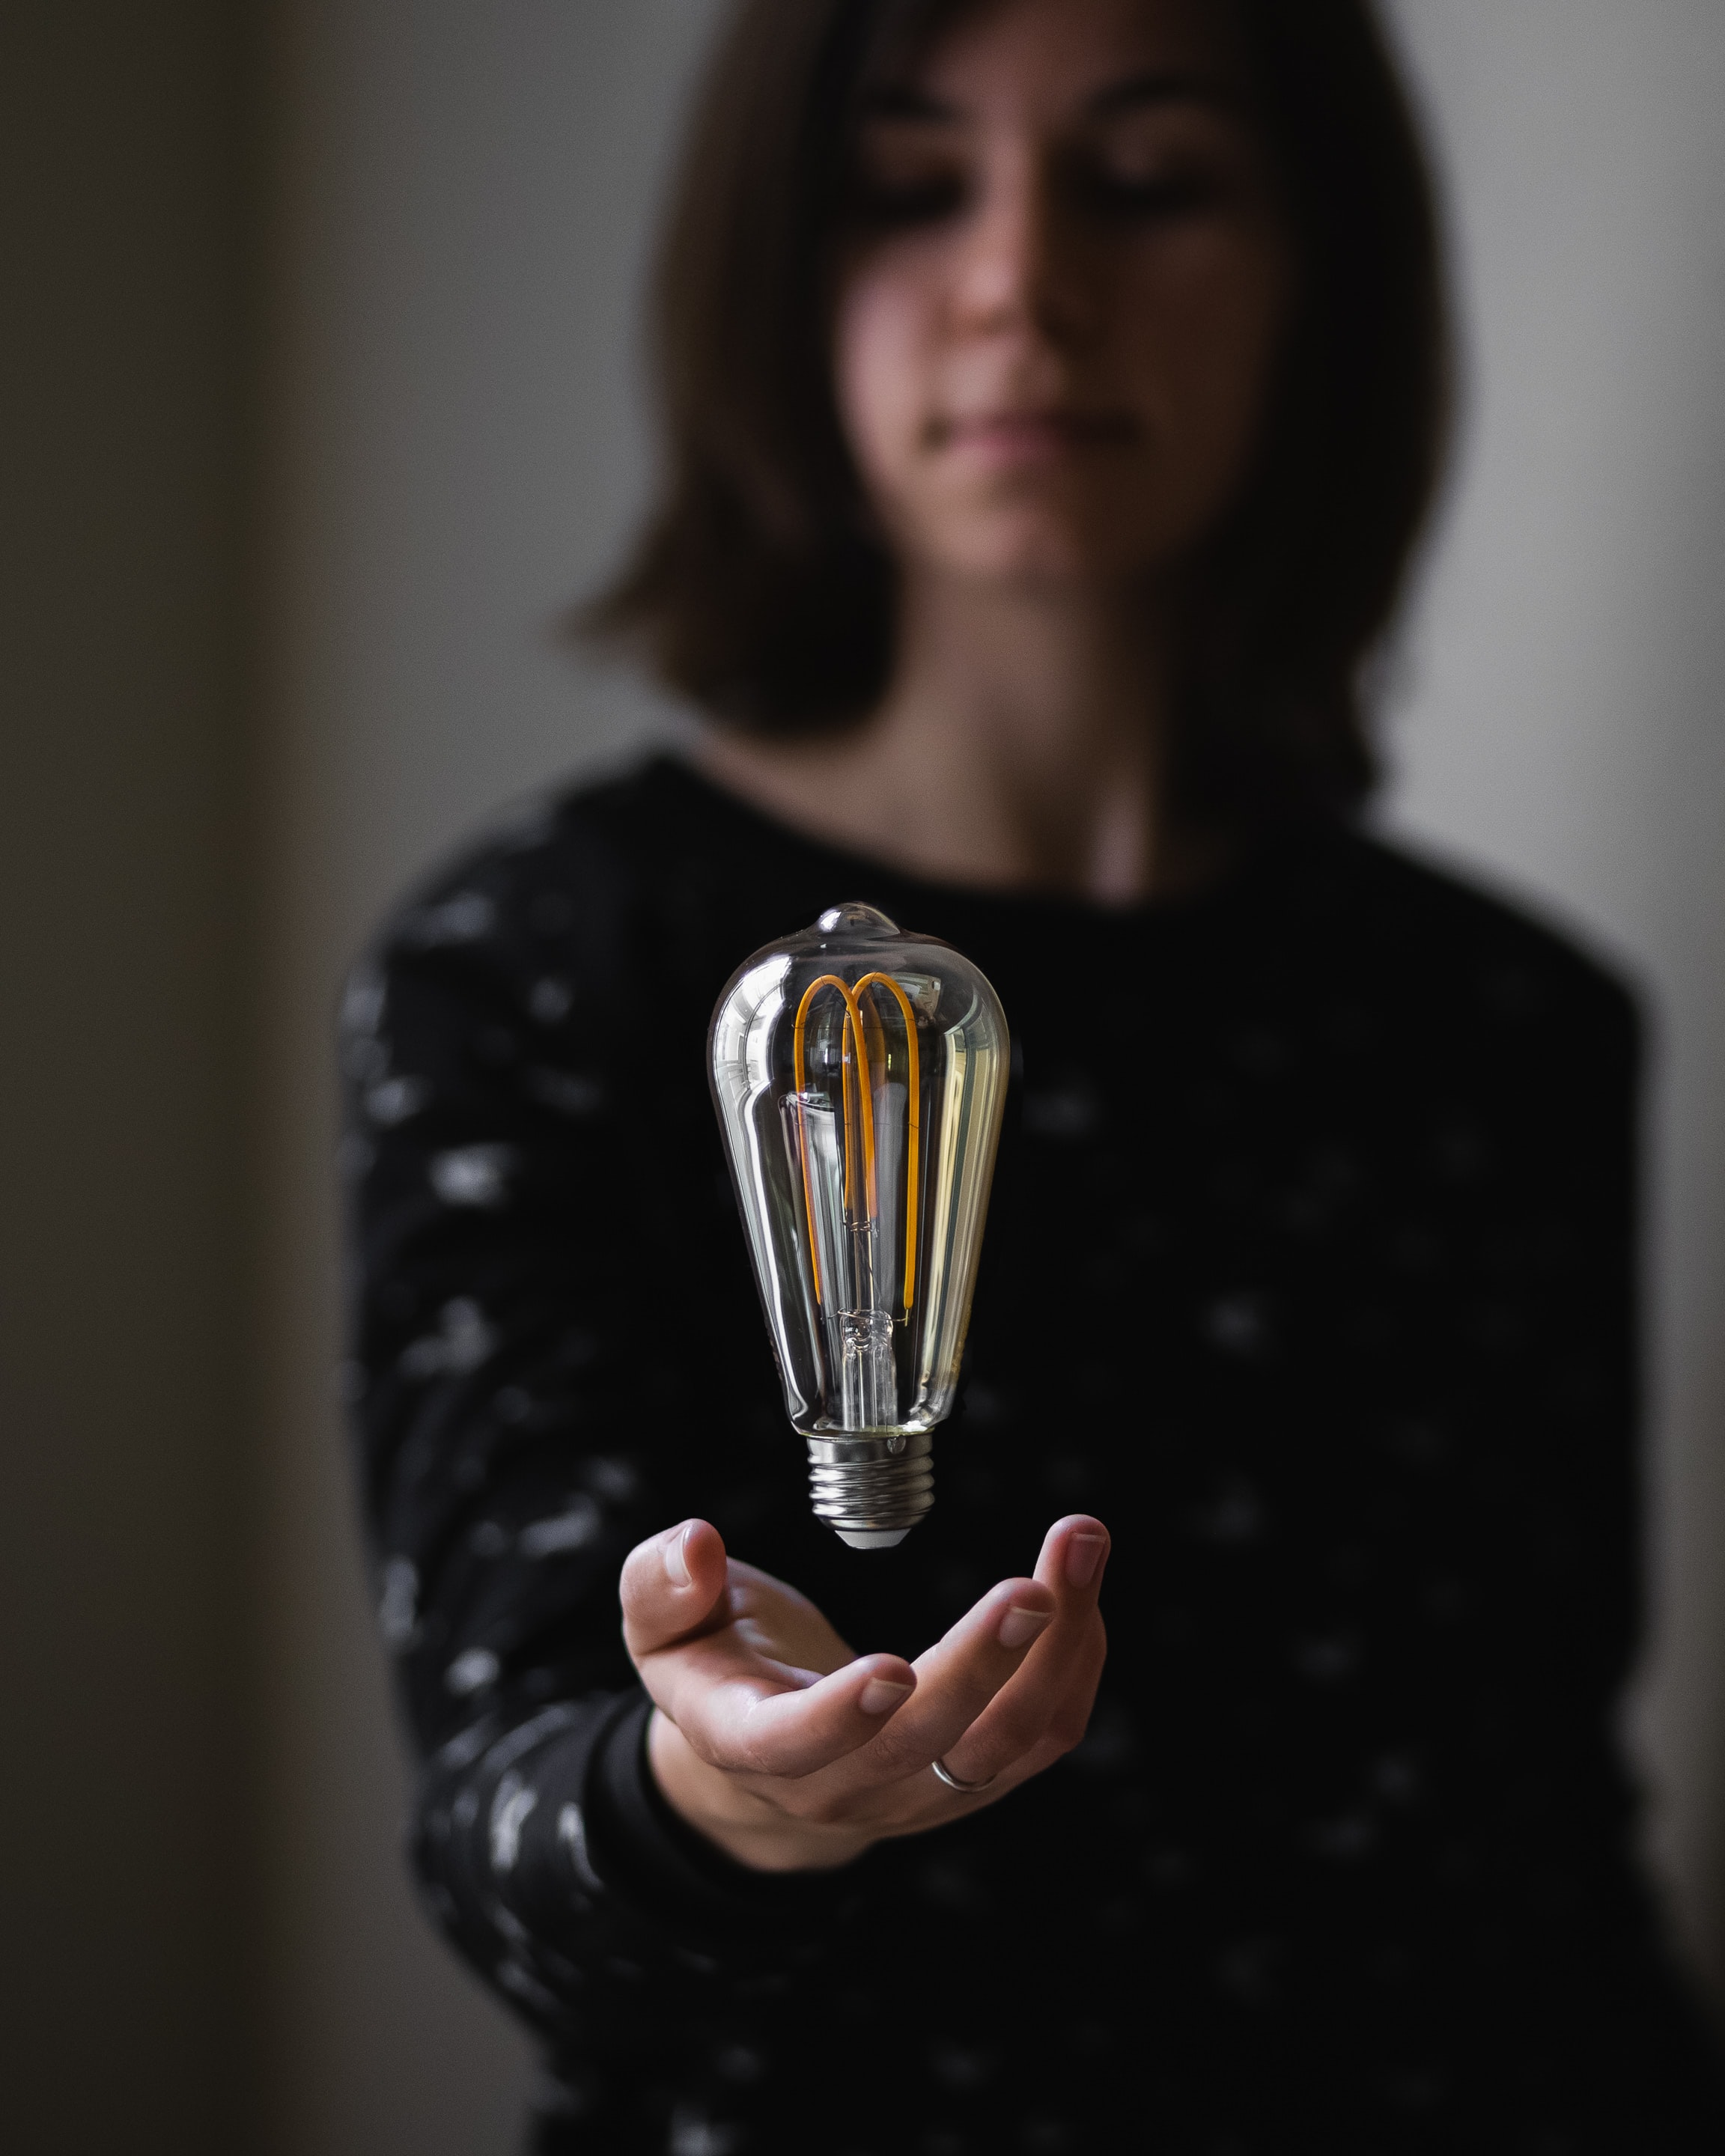 person trying to hold clear light bulb